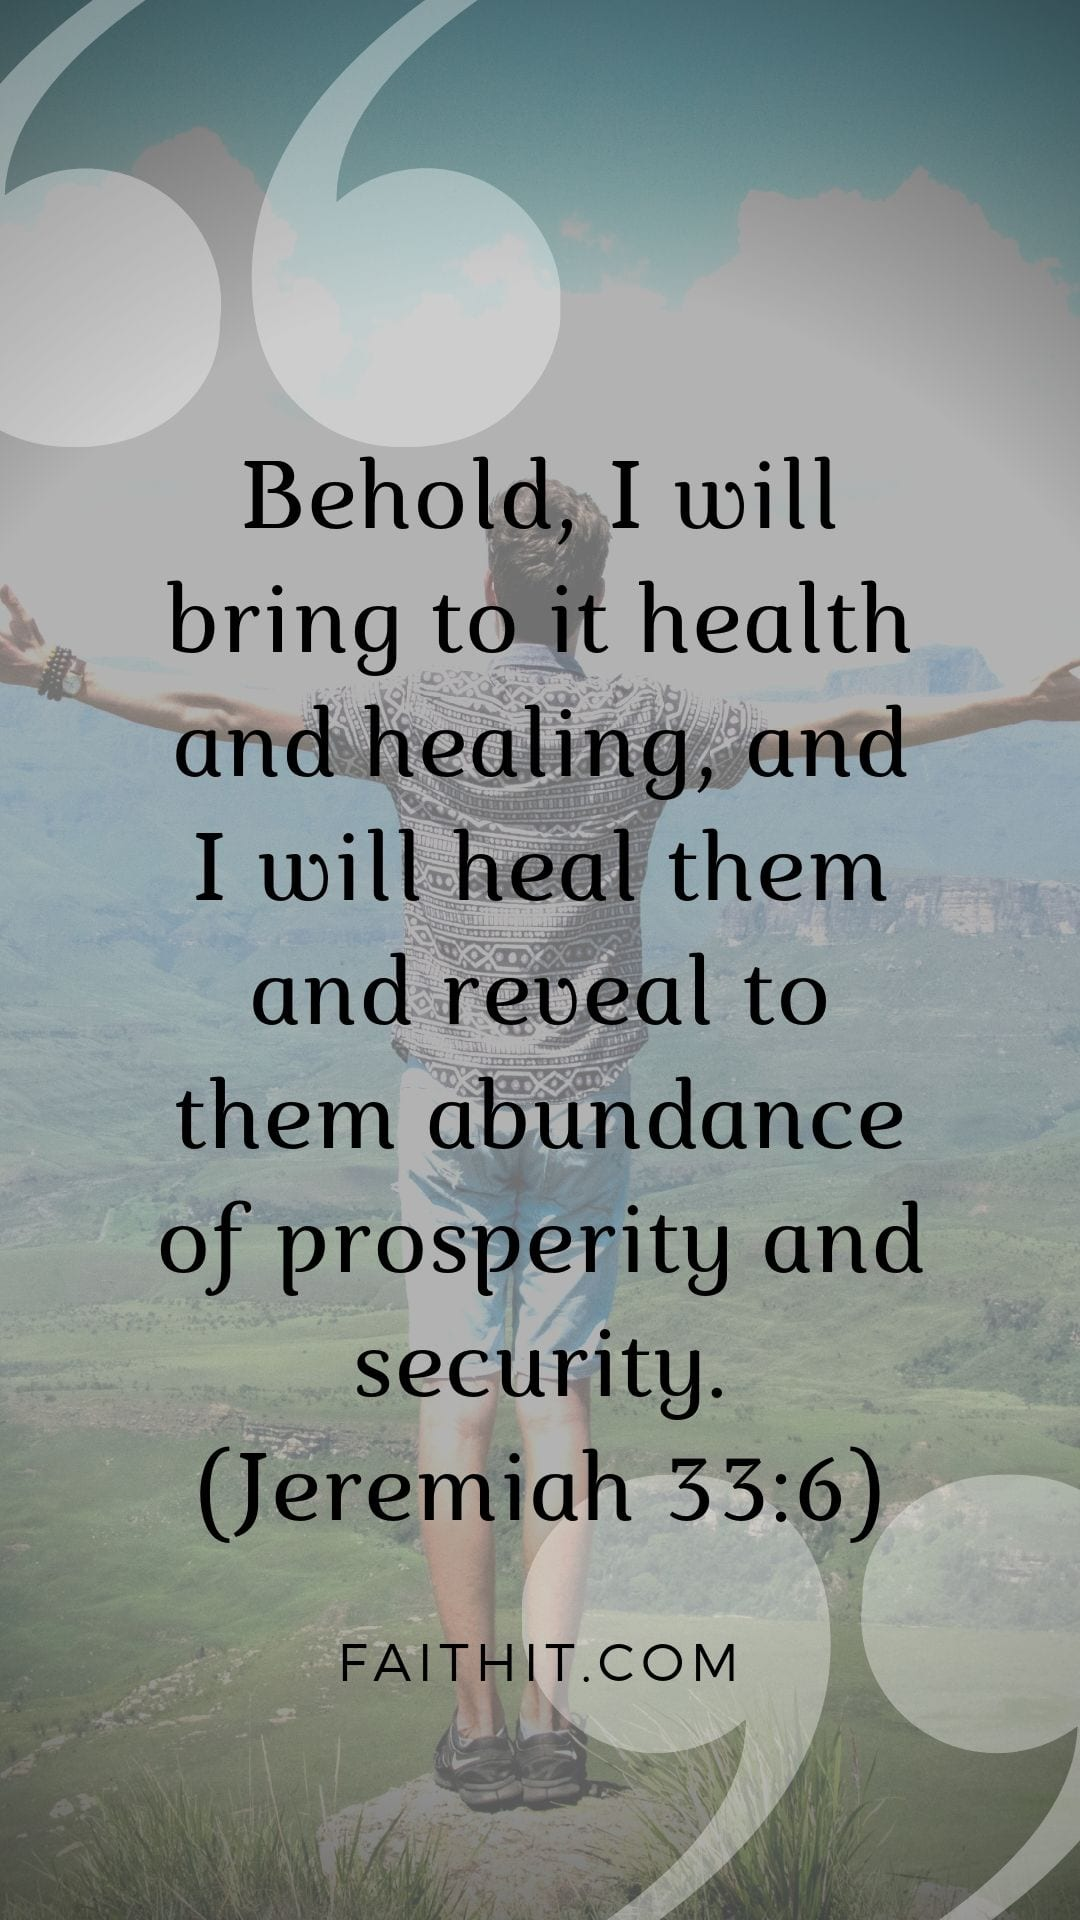 Behold, I will bring to it health and healing, and I will heal them and reveal to them abundance of prosperity and security. (Jeremiah 33:6)